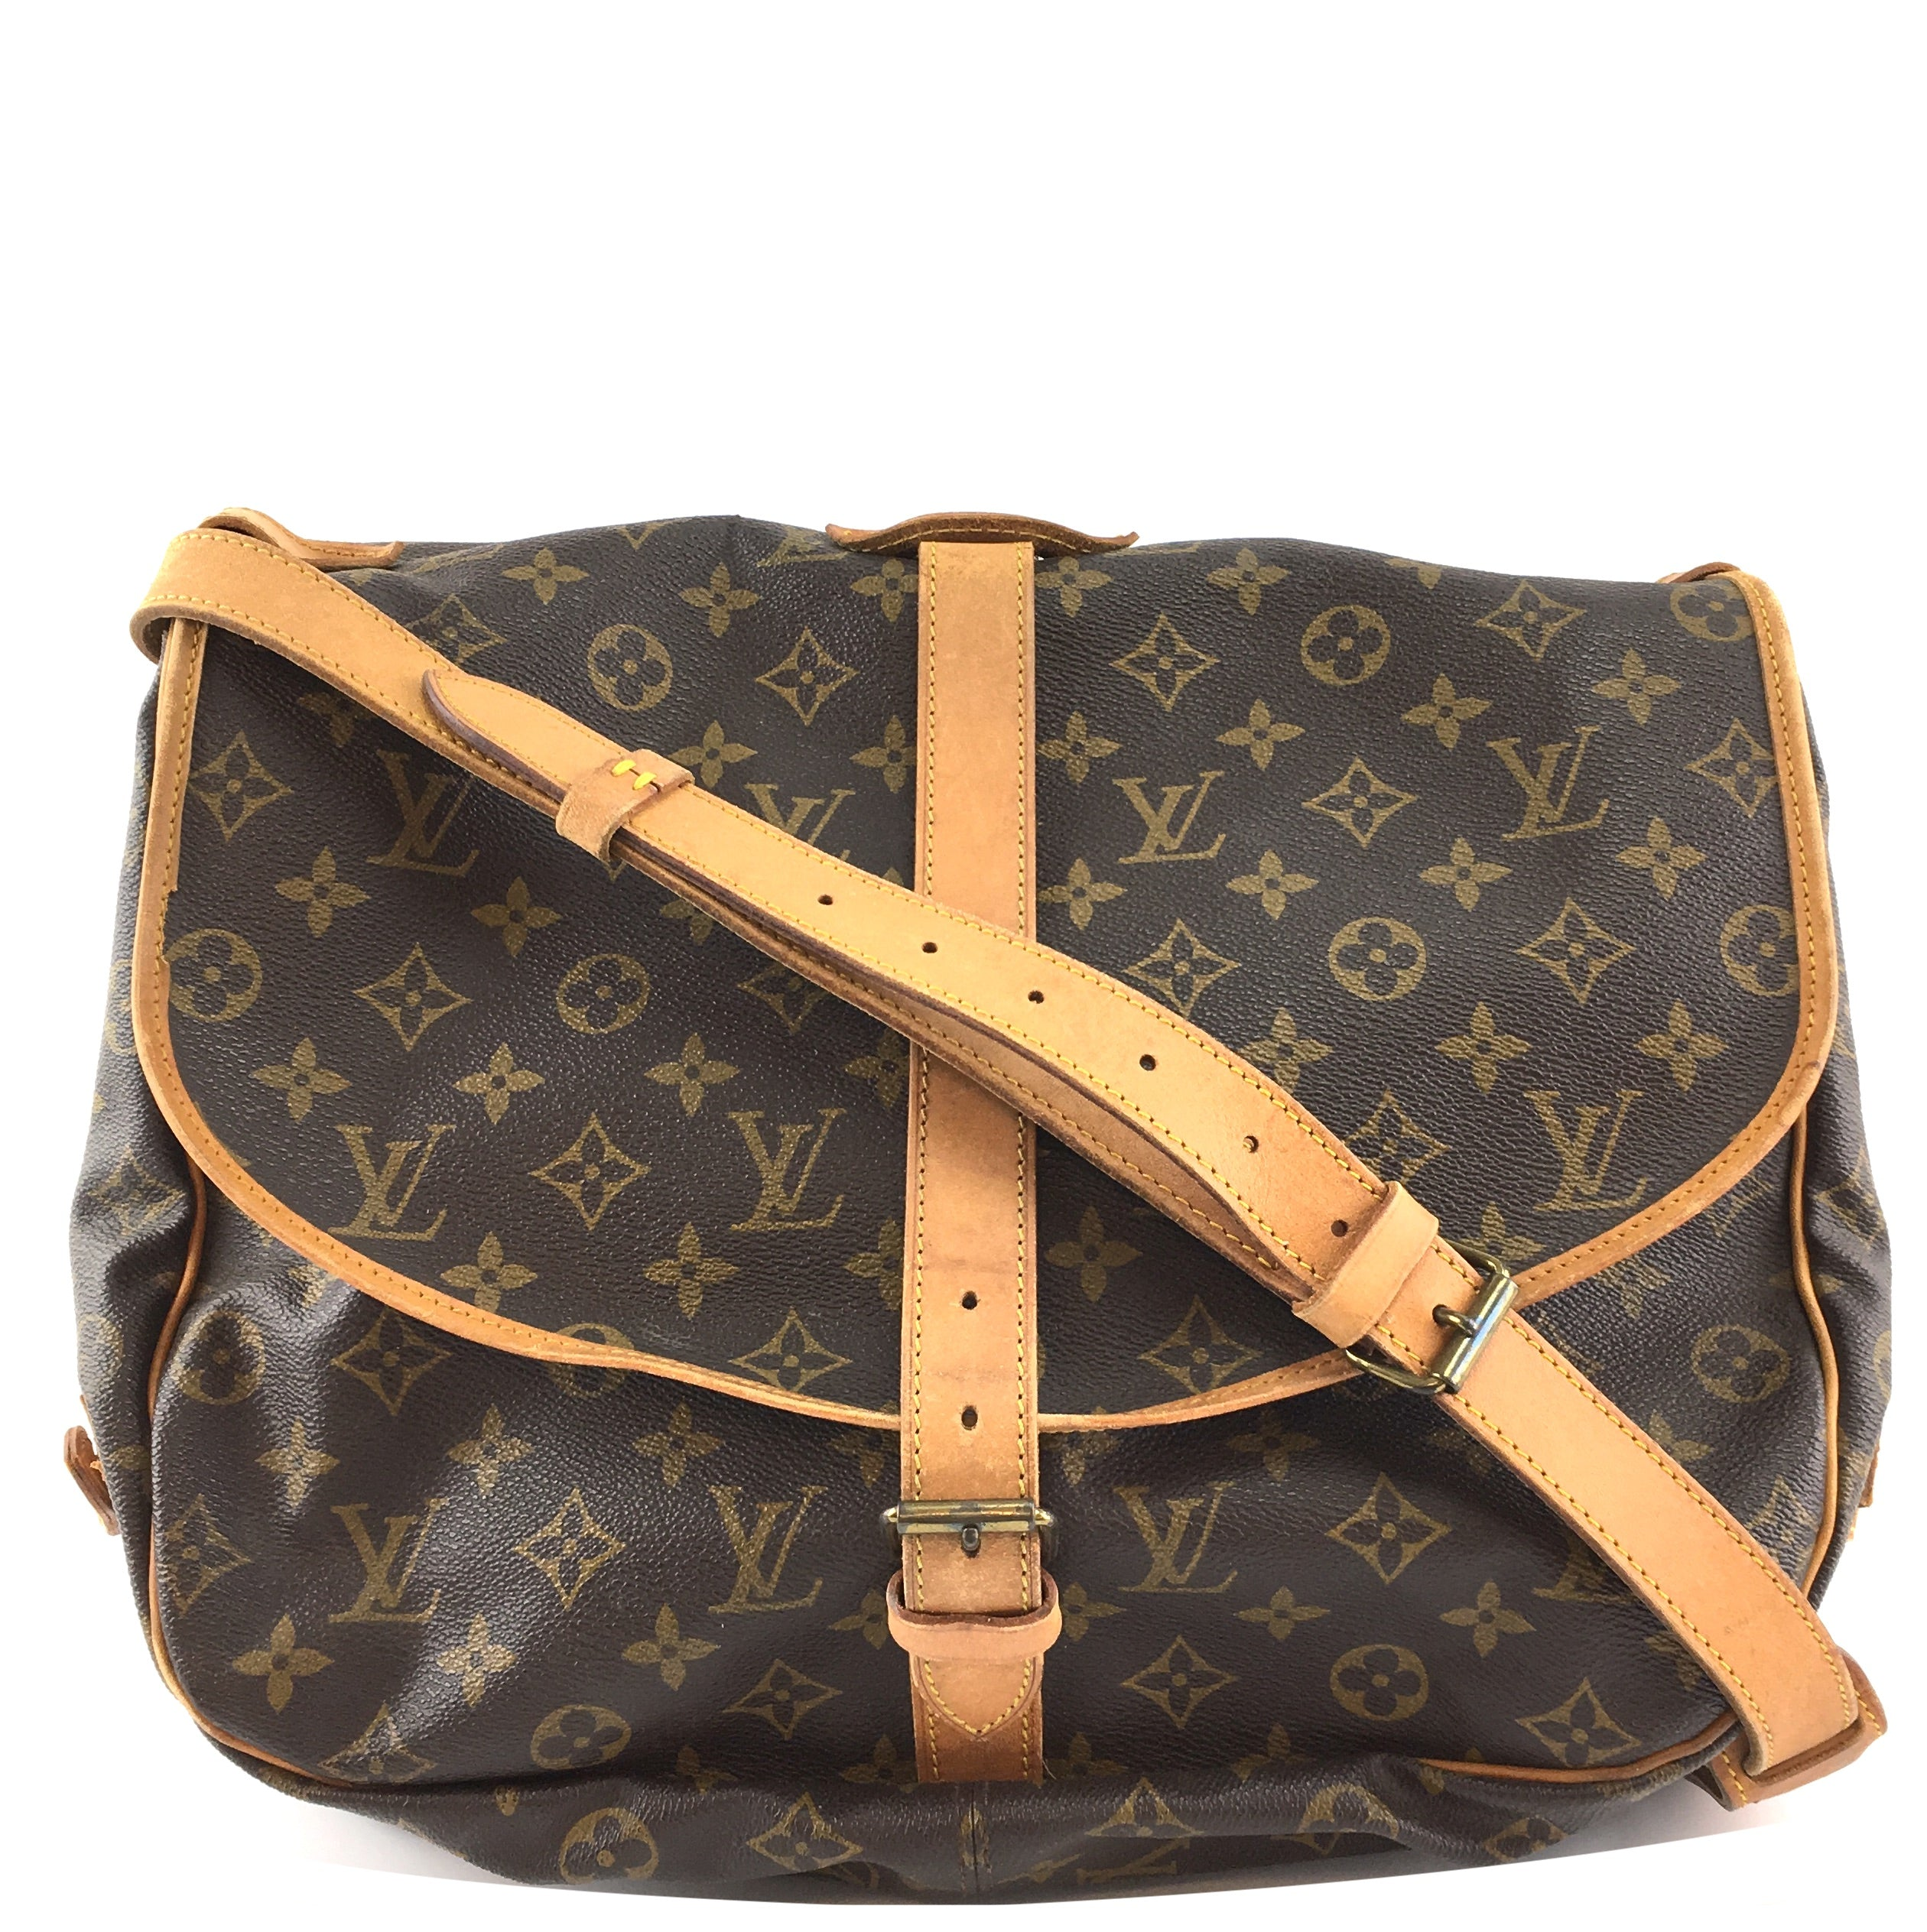 Louis Vuitton Saumur 35 Monogram Canvas